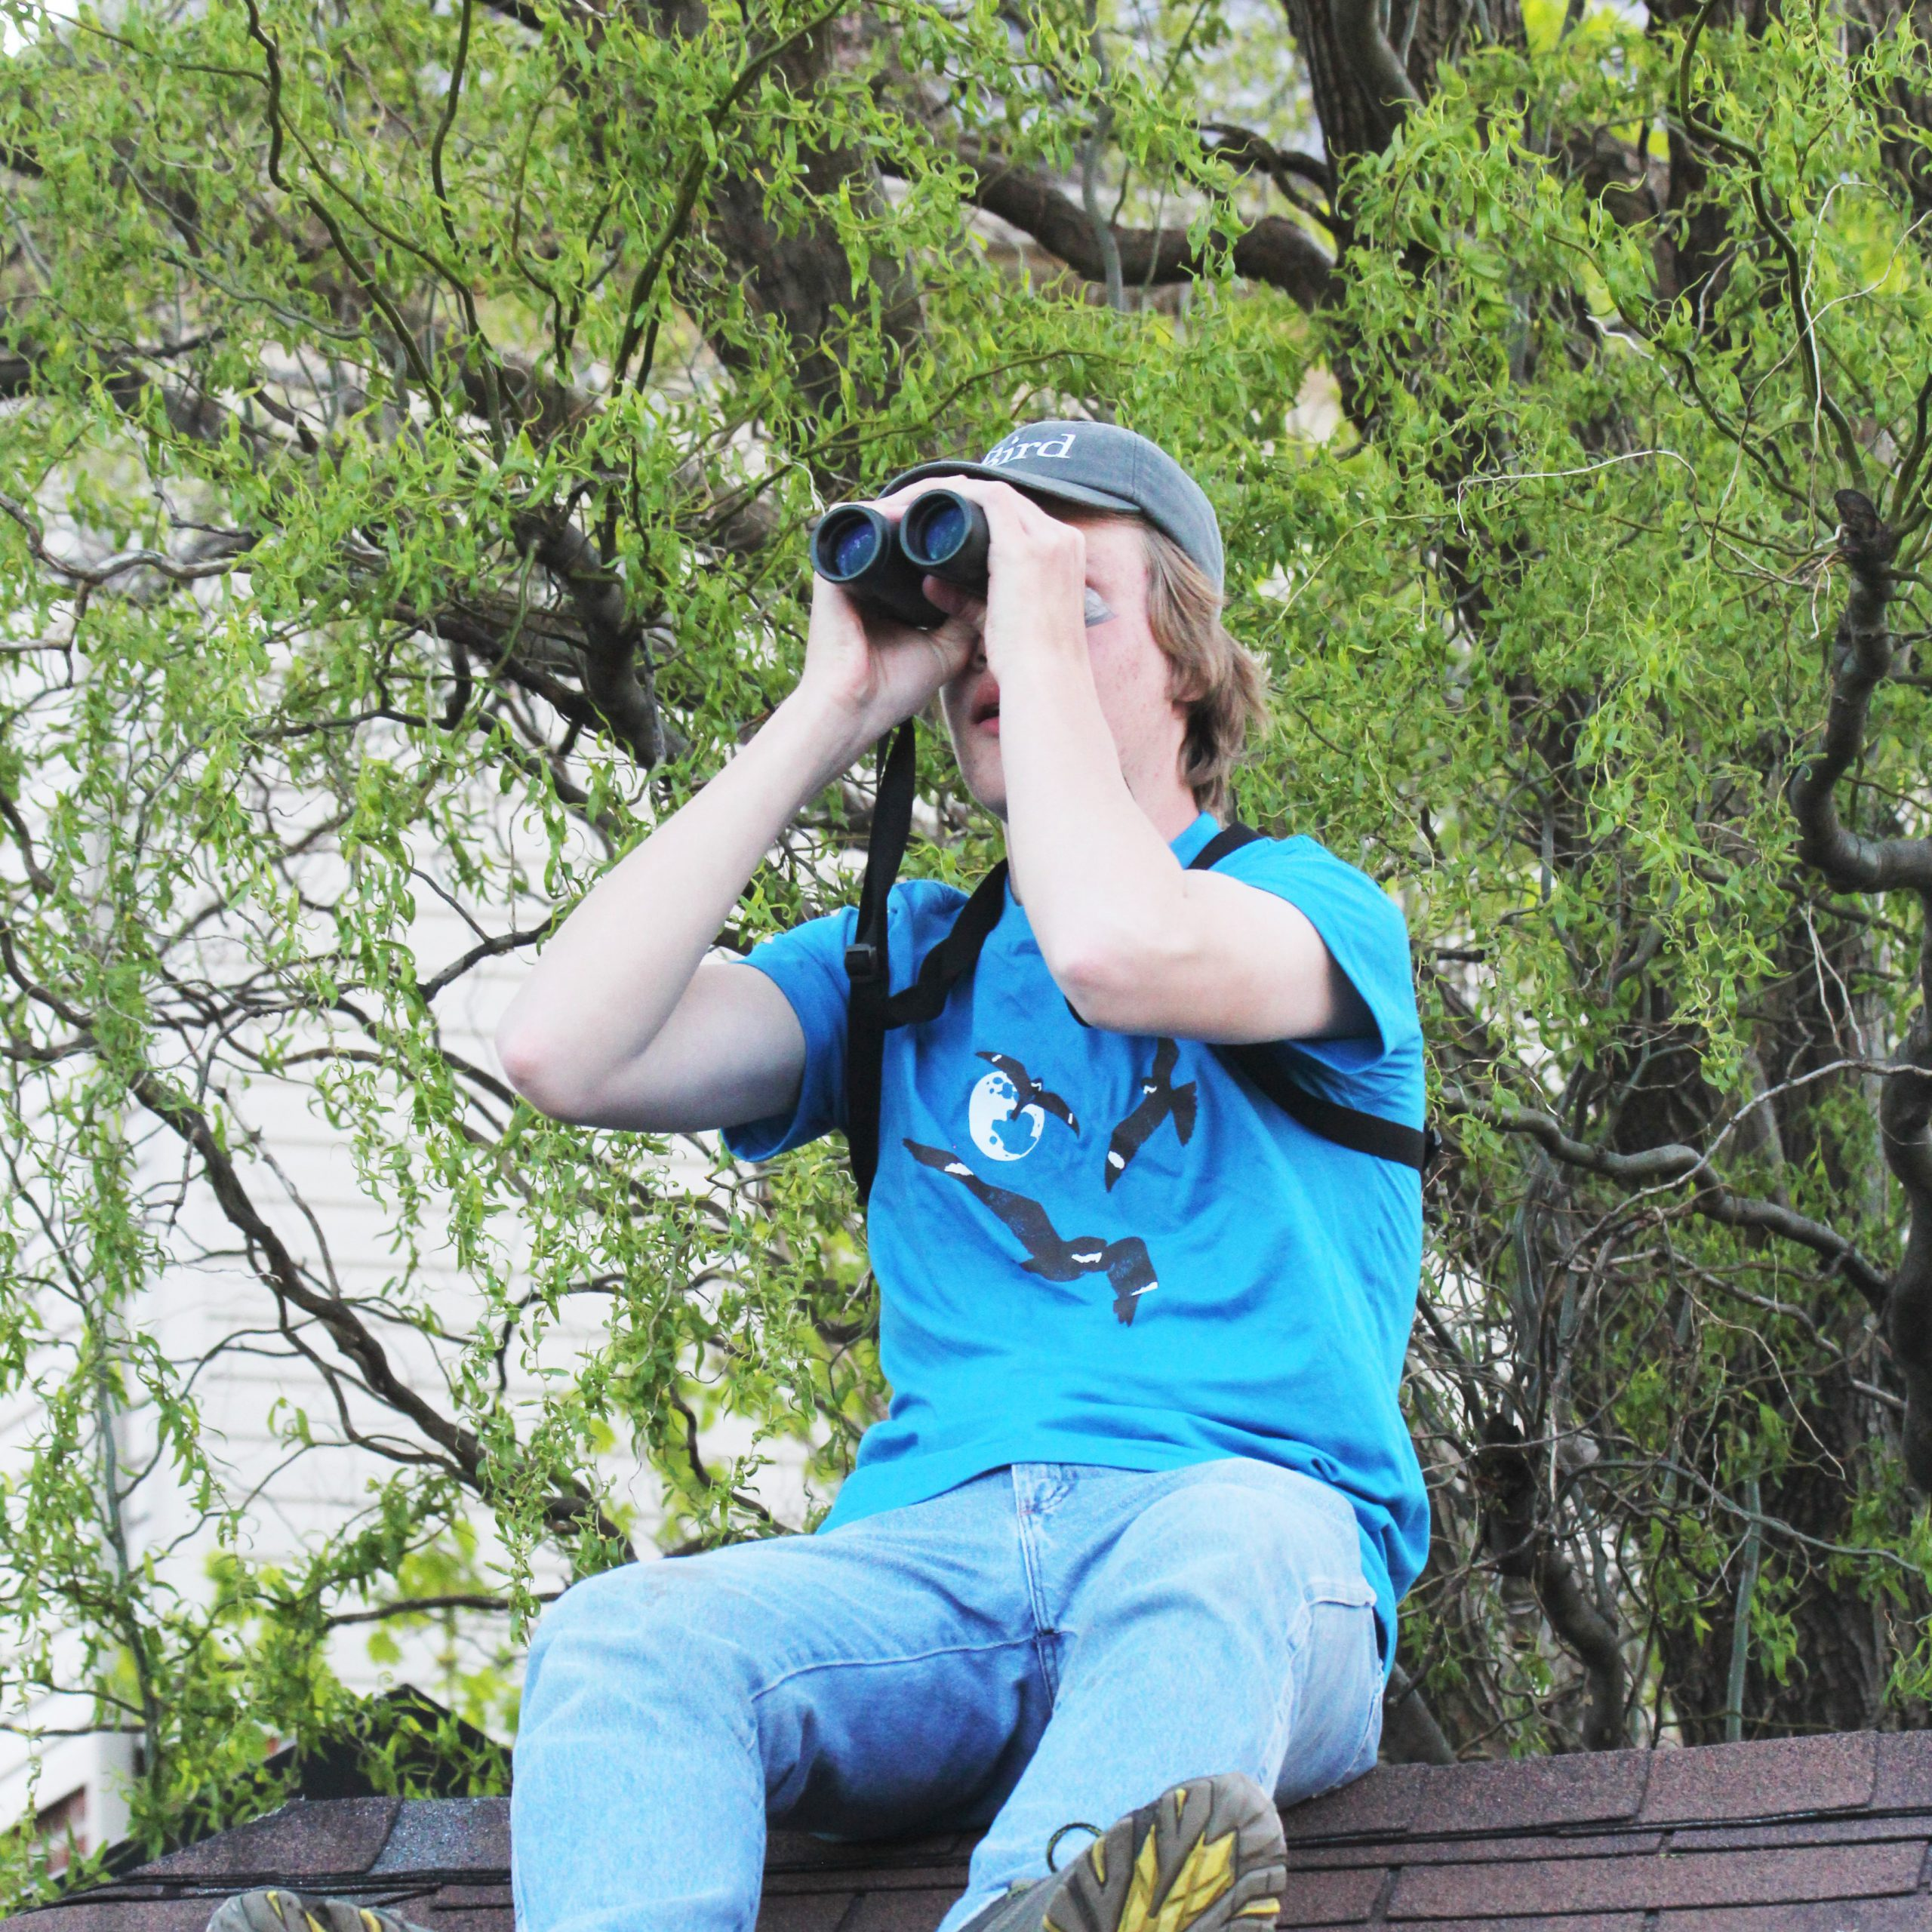 Birdathon fun spans the country and the seasons in 2020